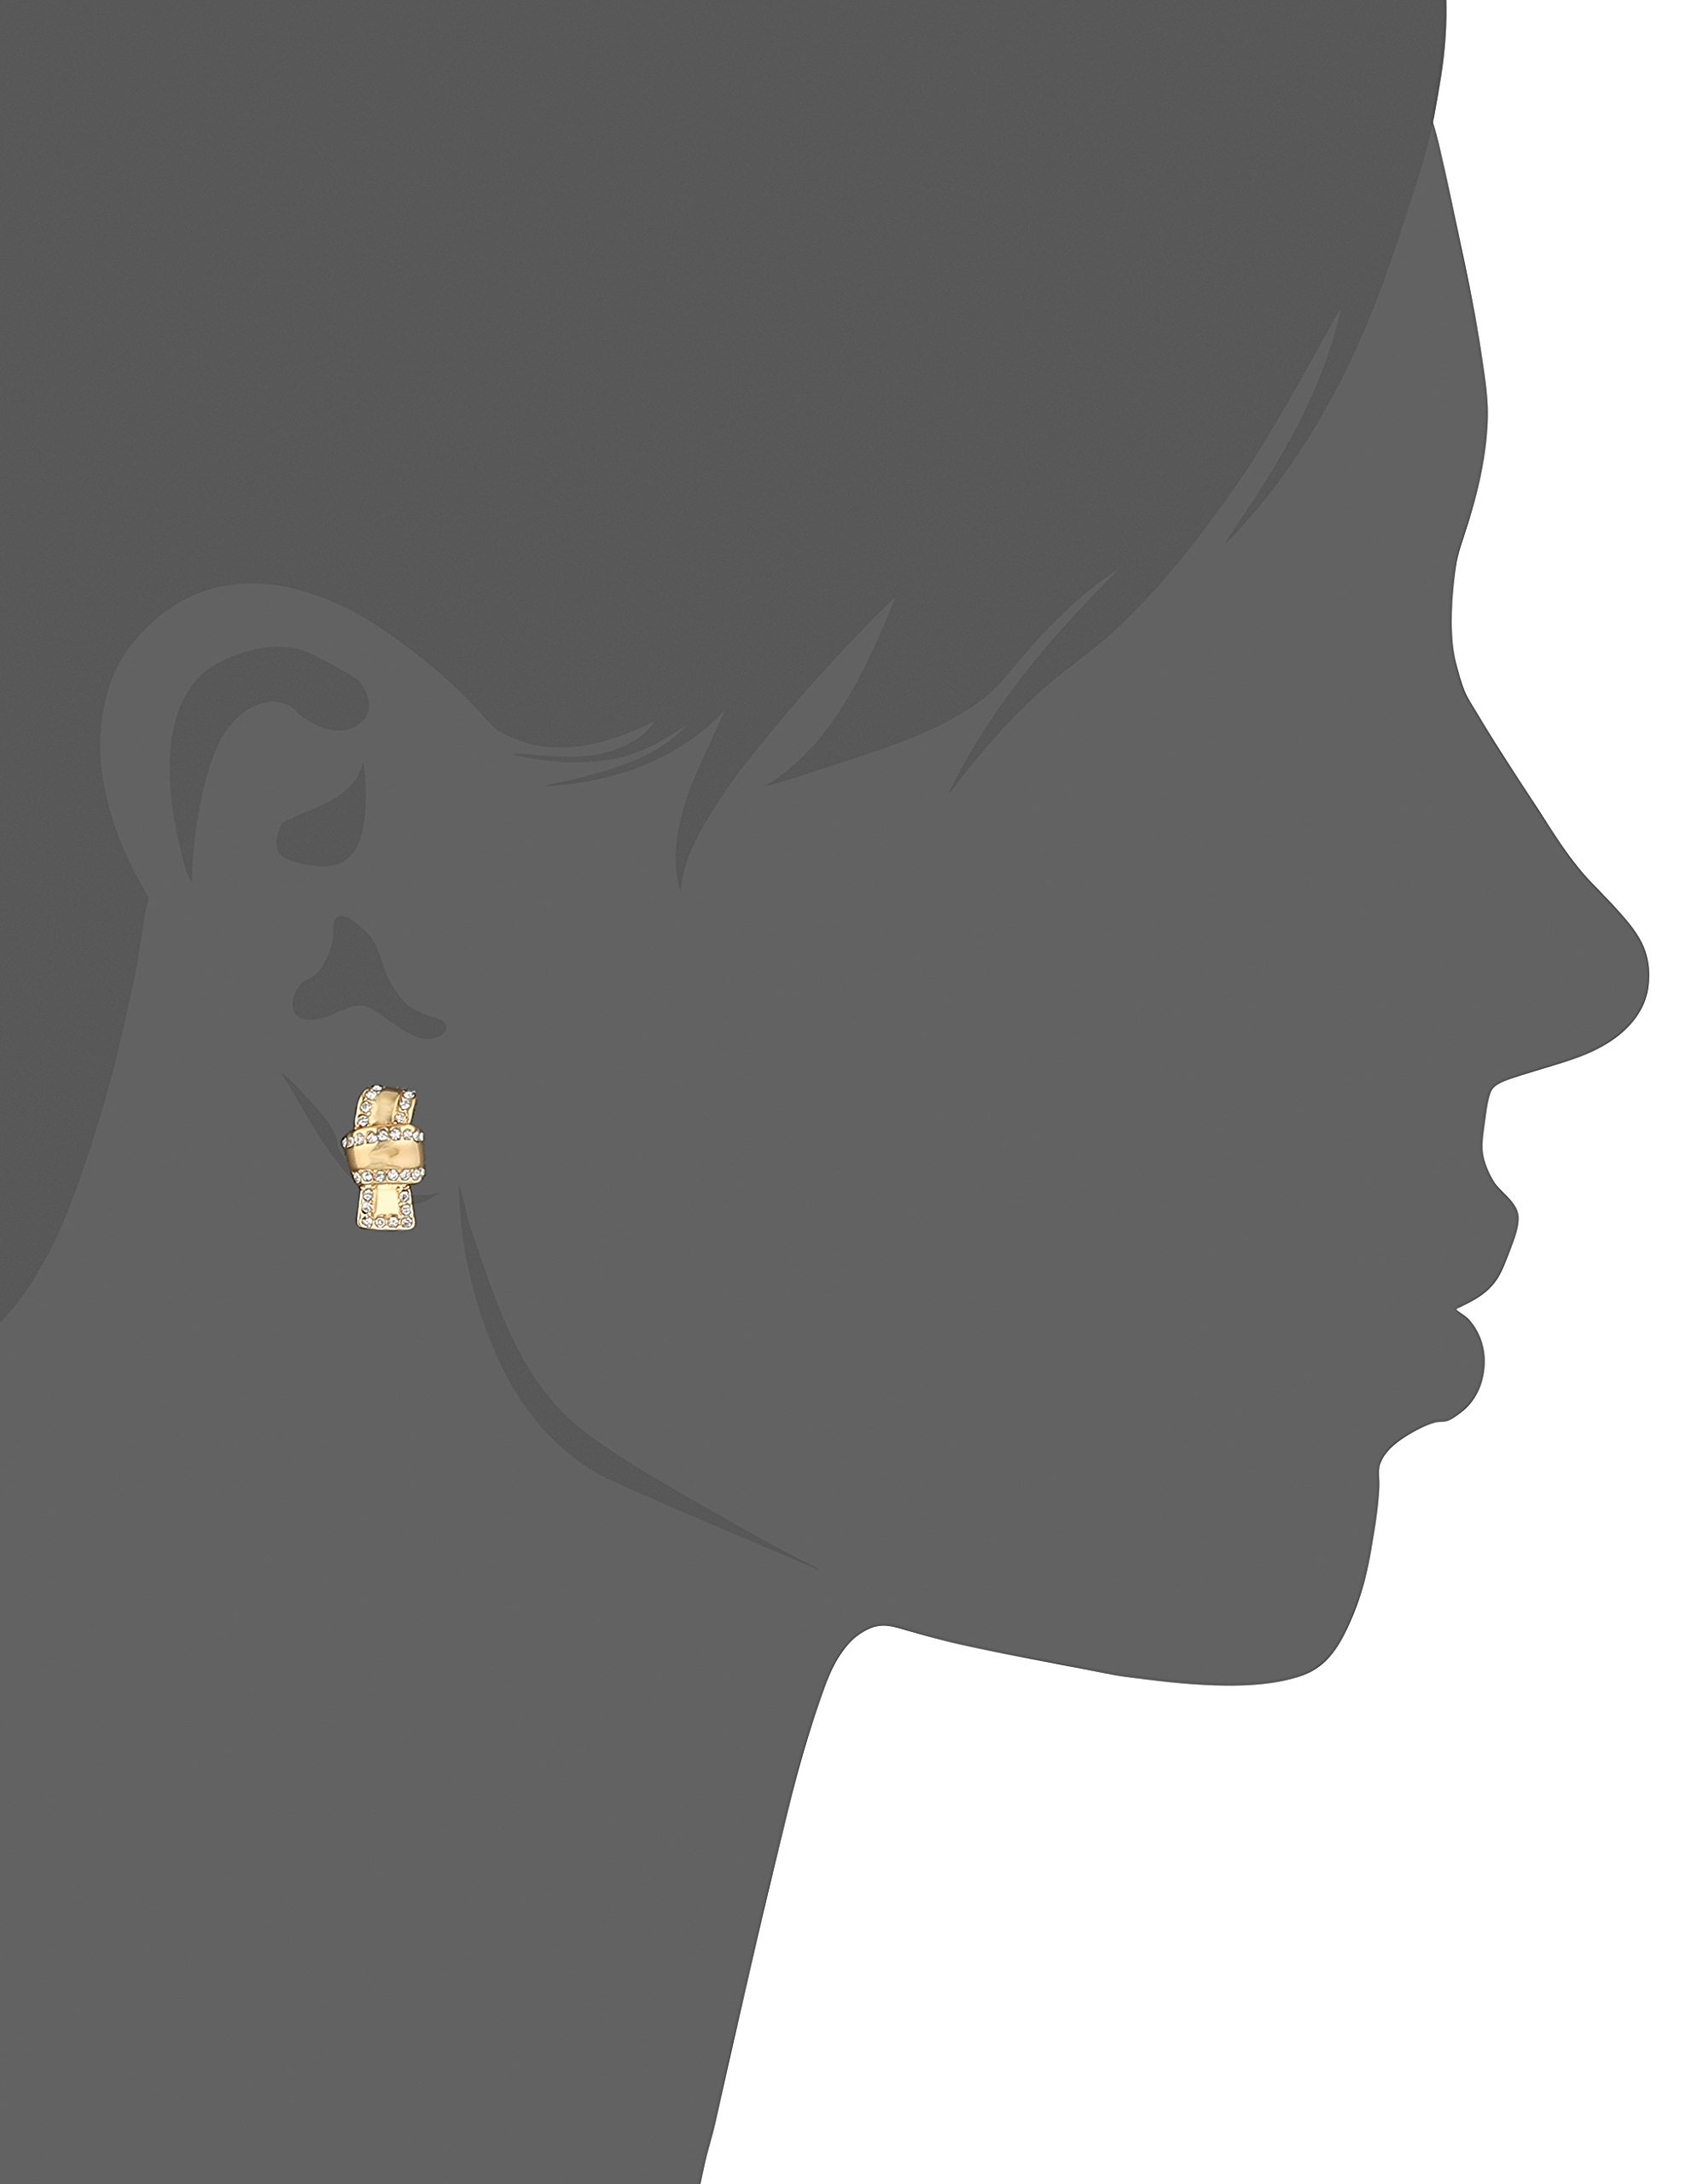 kate spade new york Pave Knot Clear/Gold Stud Earrings by Kate Spade New York (Image #2)